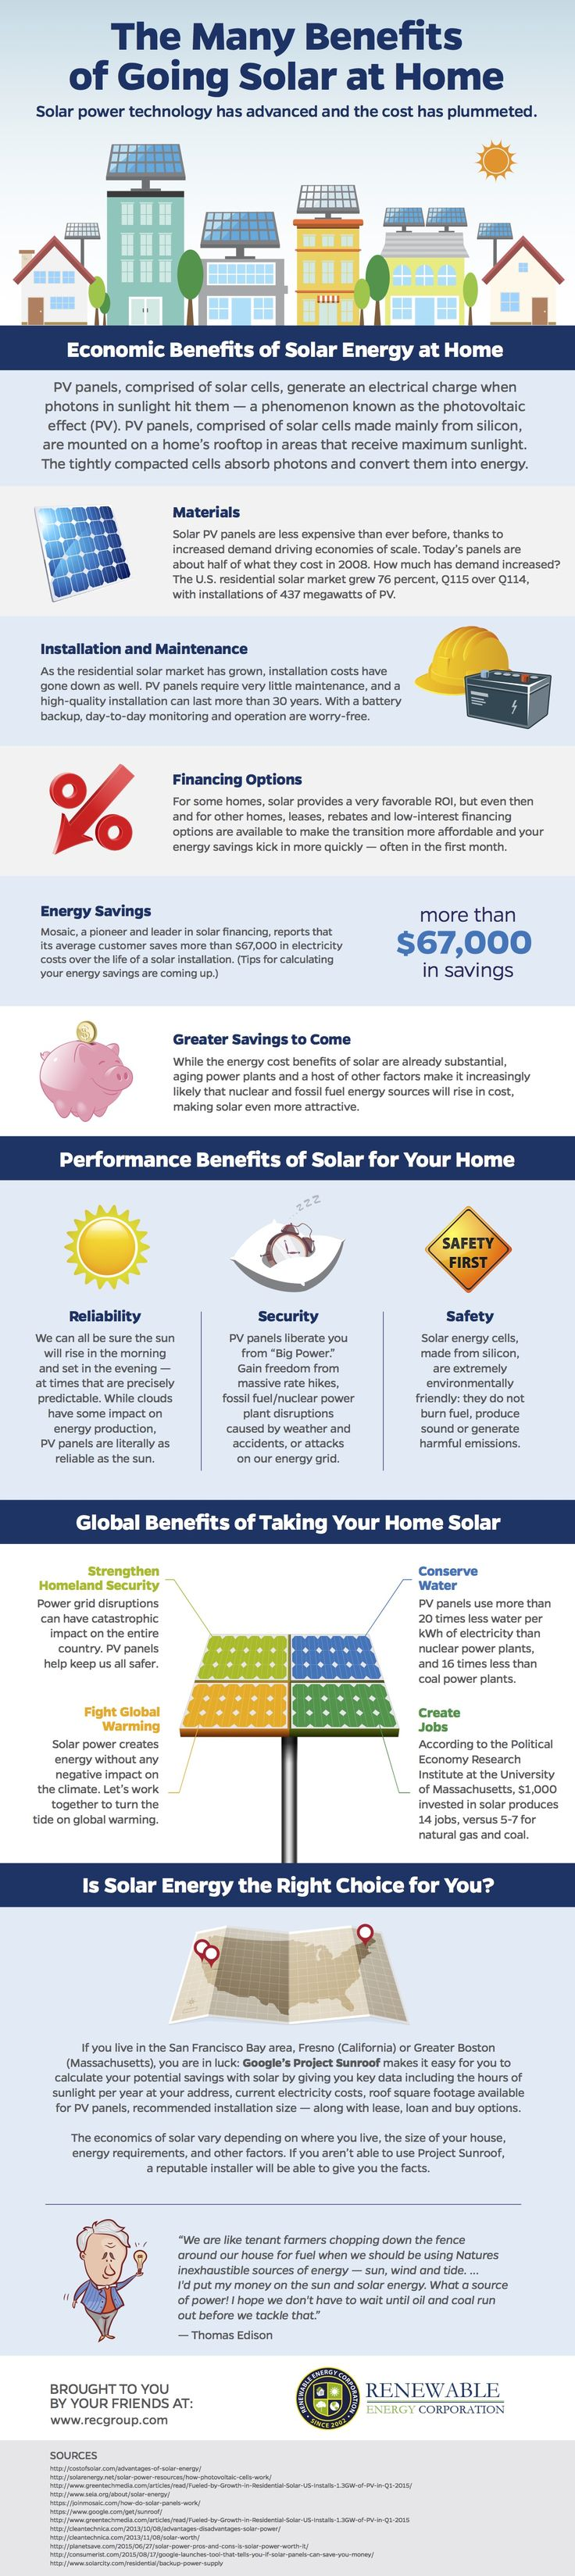 Are you still on the fence about installing solar panels at home? Check out this infographic for a good look at the many benefits – environmental and economic – that you should know about when deciding to go solar.